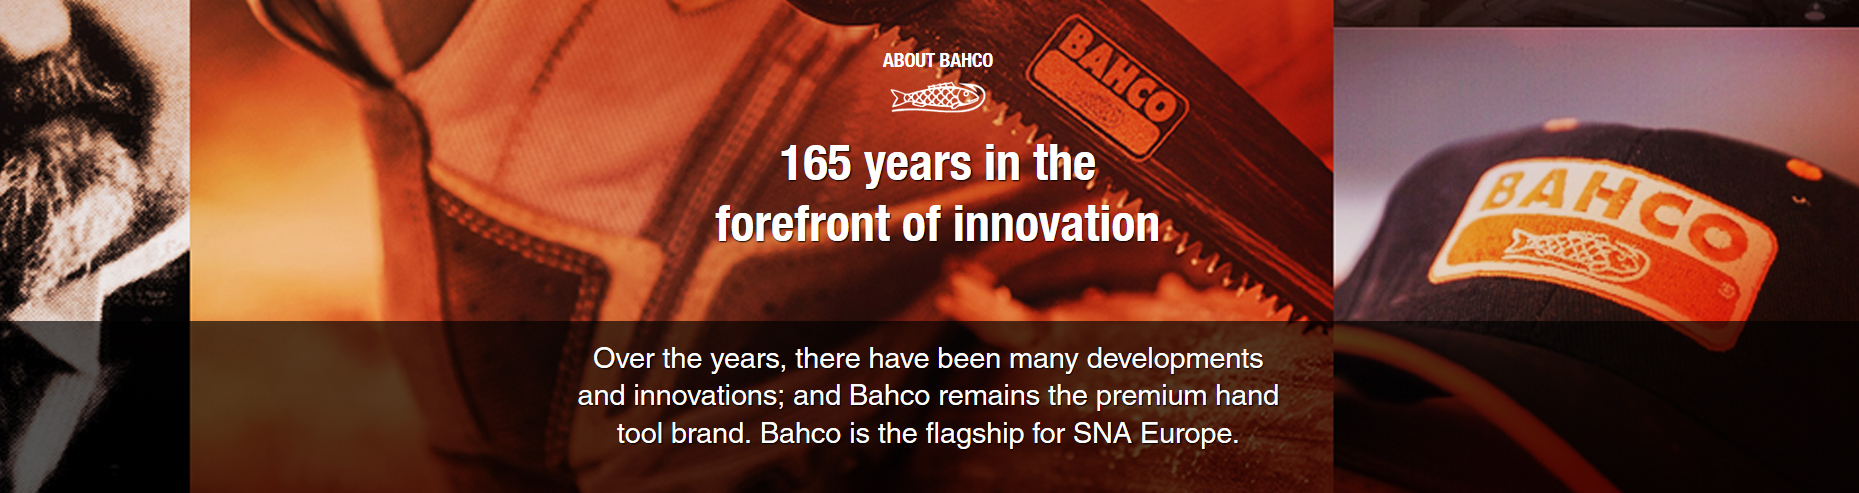 bahco-history-eng-photo